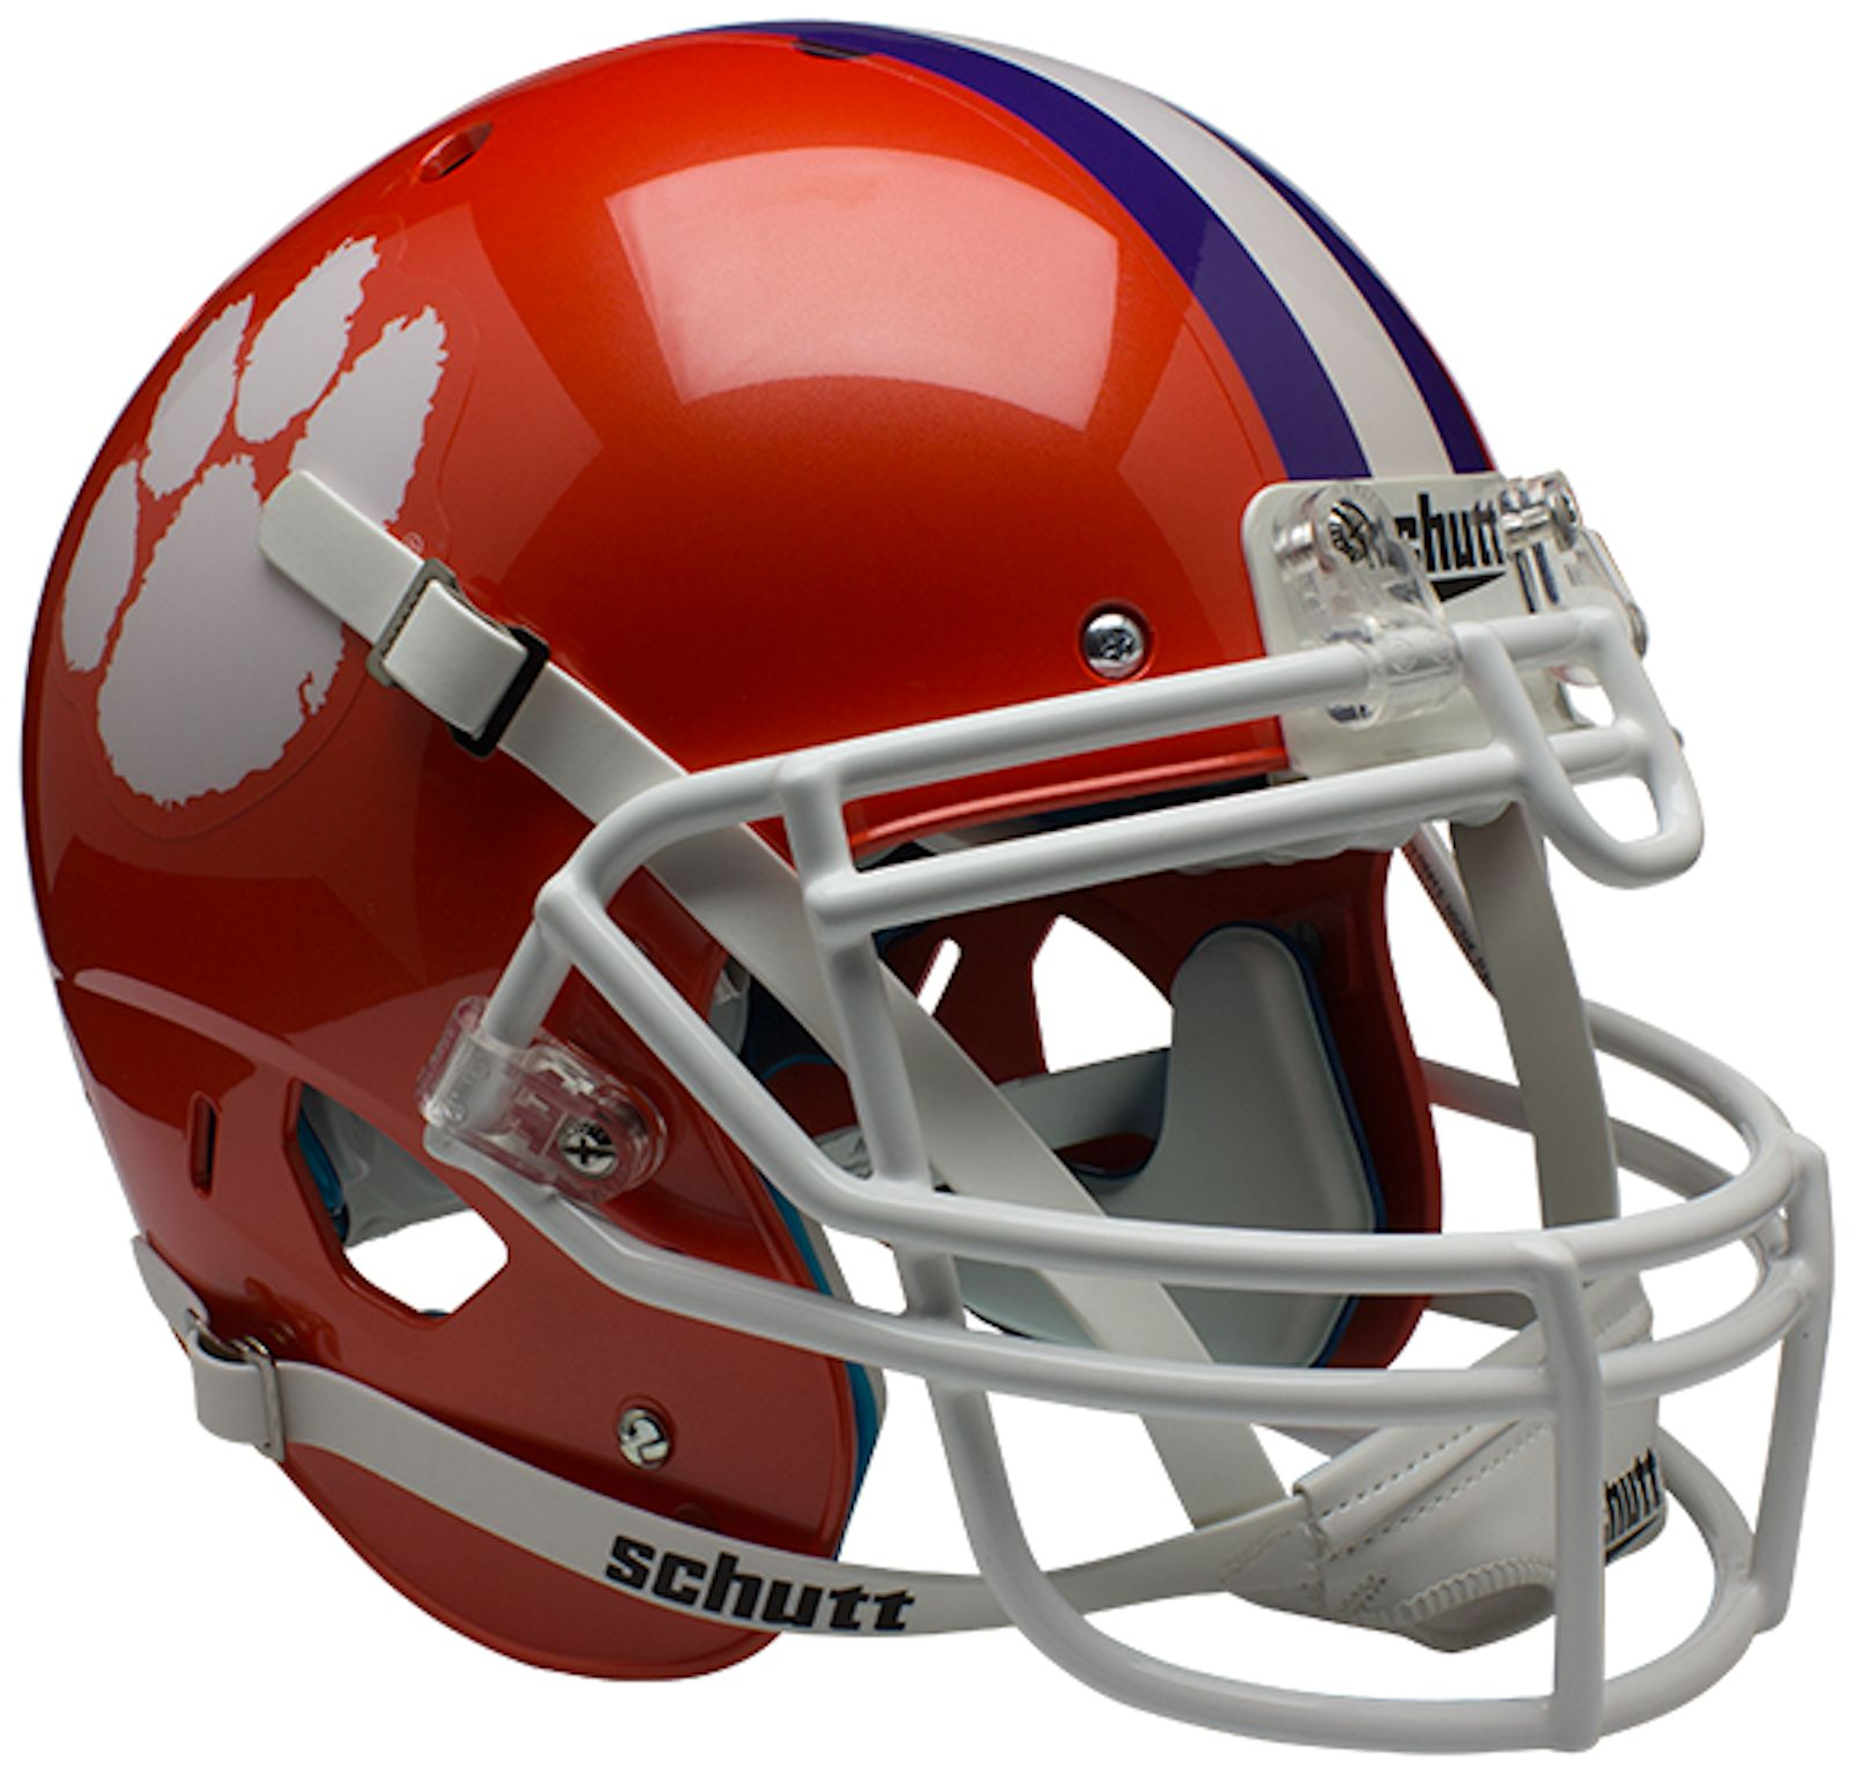 Clemson Tigers Authentic College XP Football Helmet Schutt